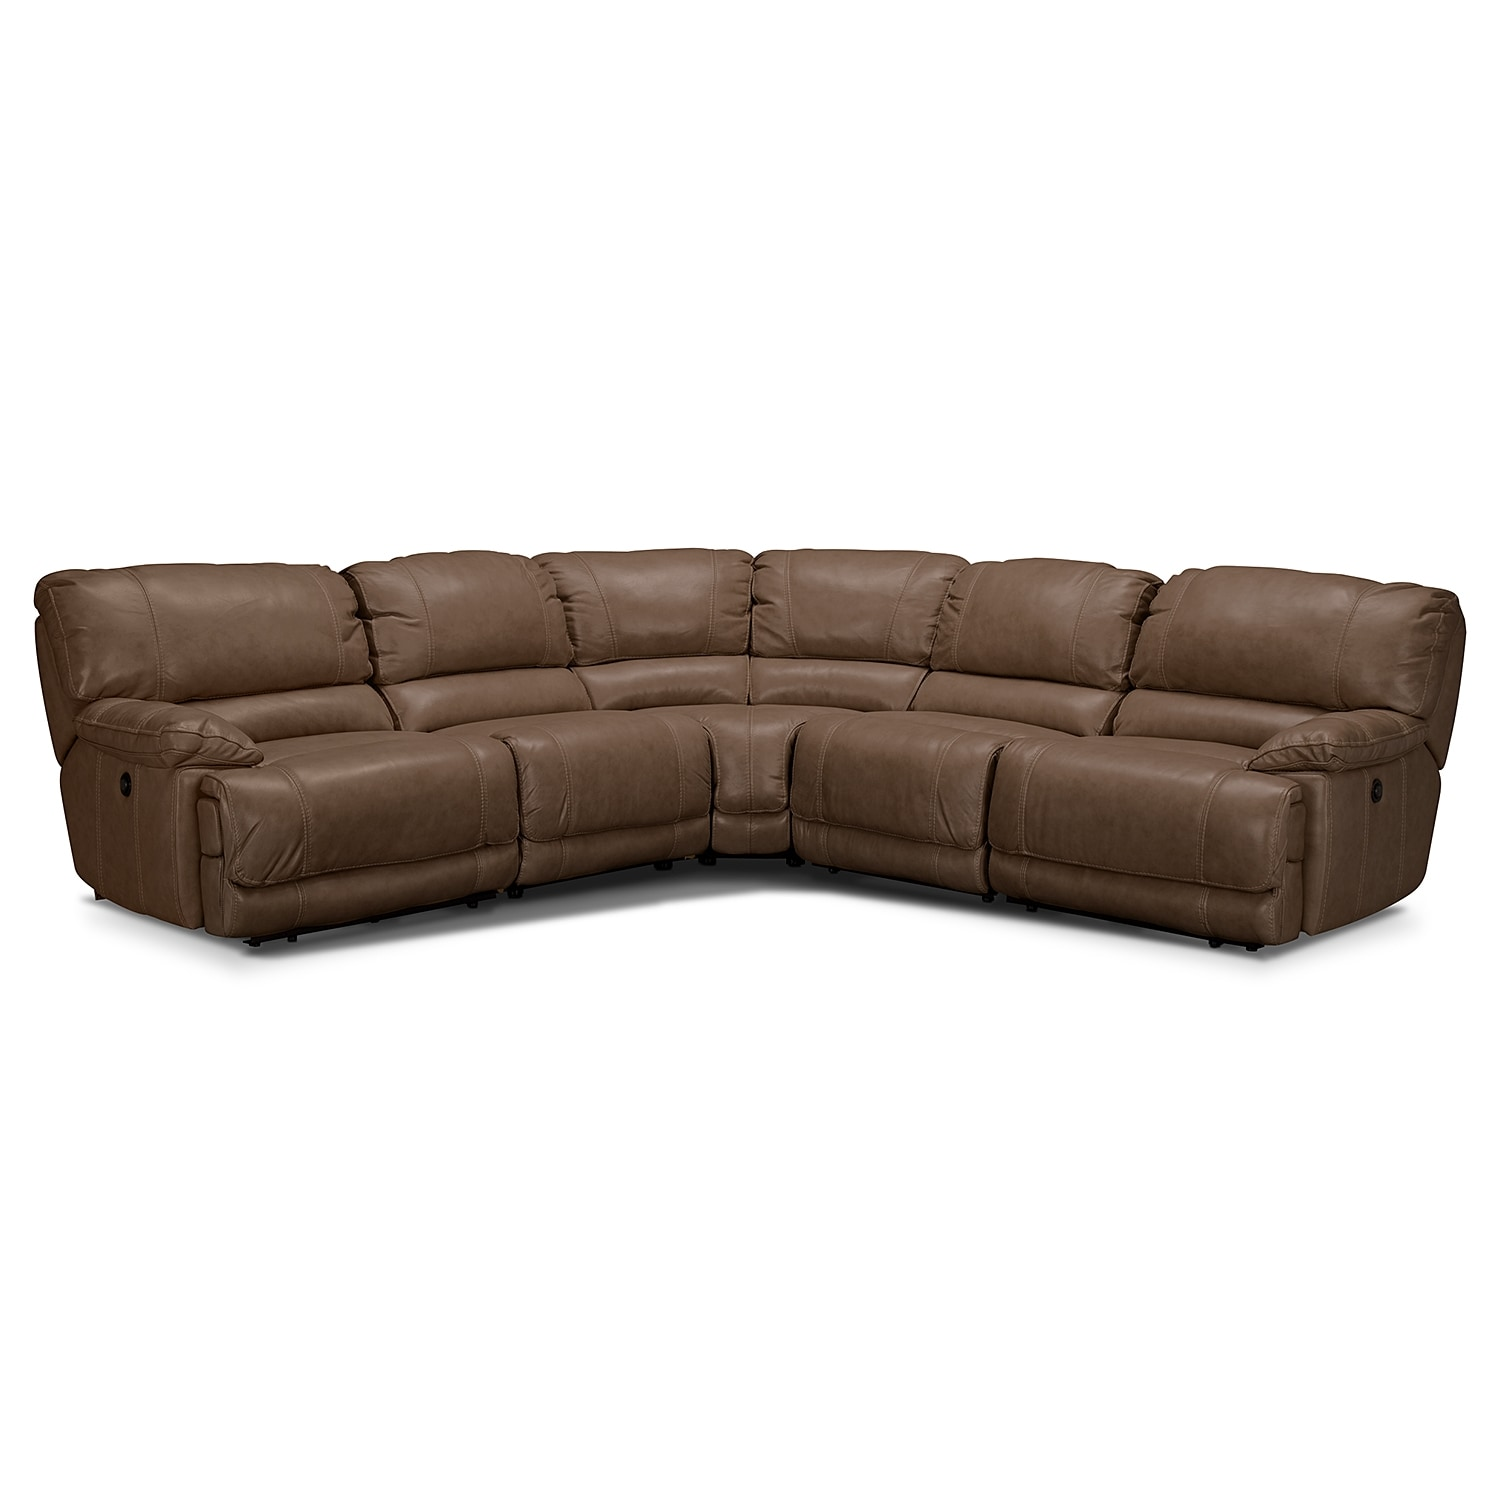 Living Room Furniture - St. Malo 5-Piece Right-Facing Power Reclining Sectional - Taupe